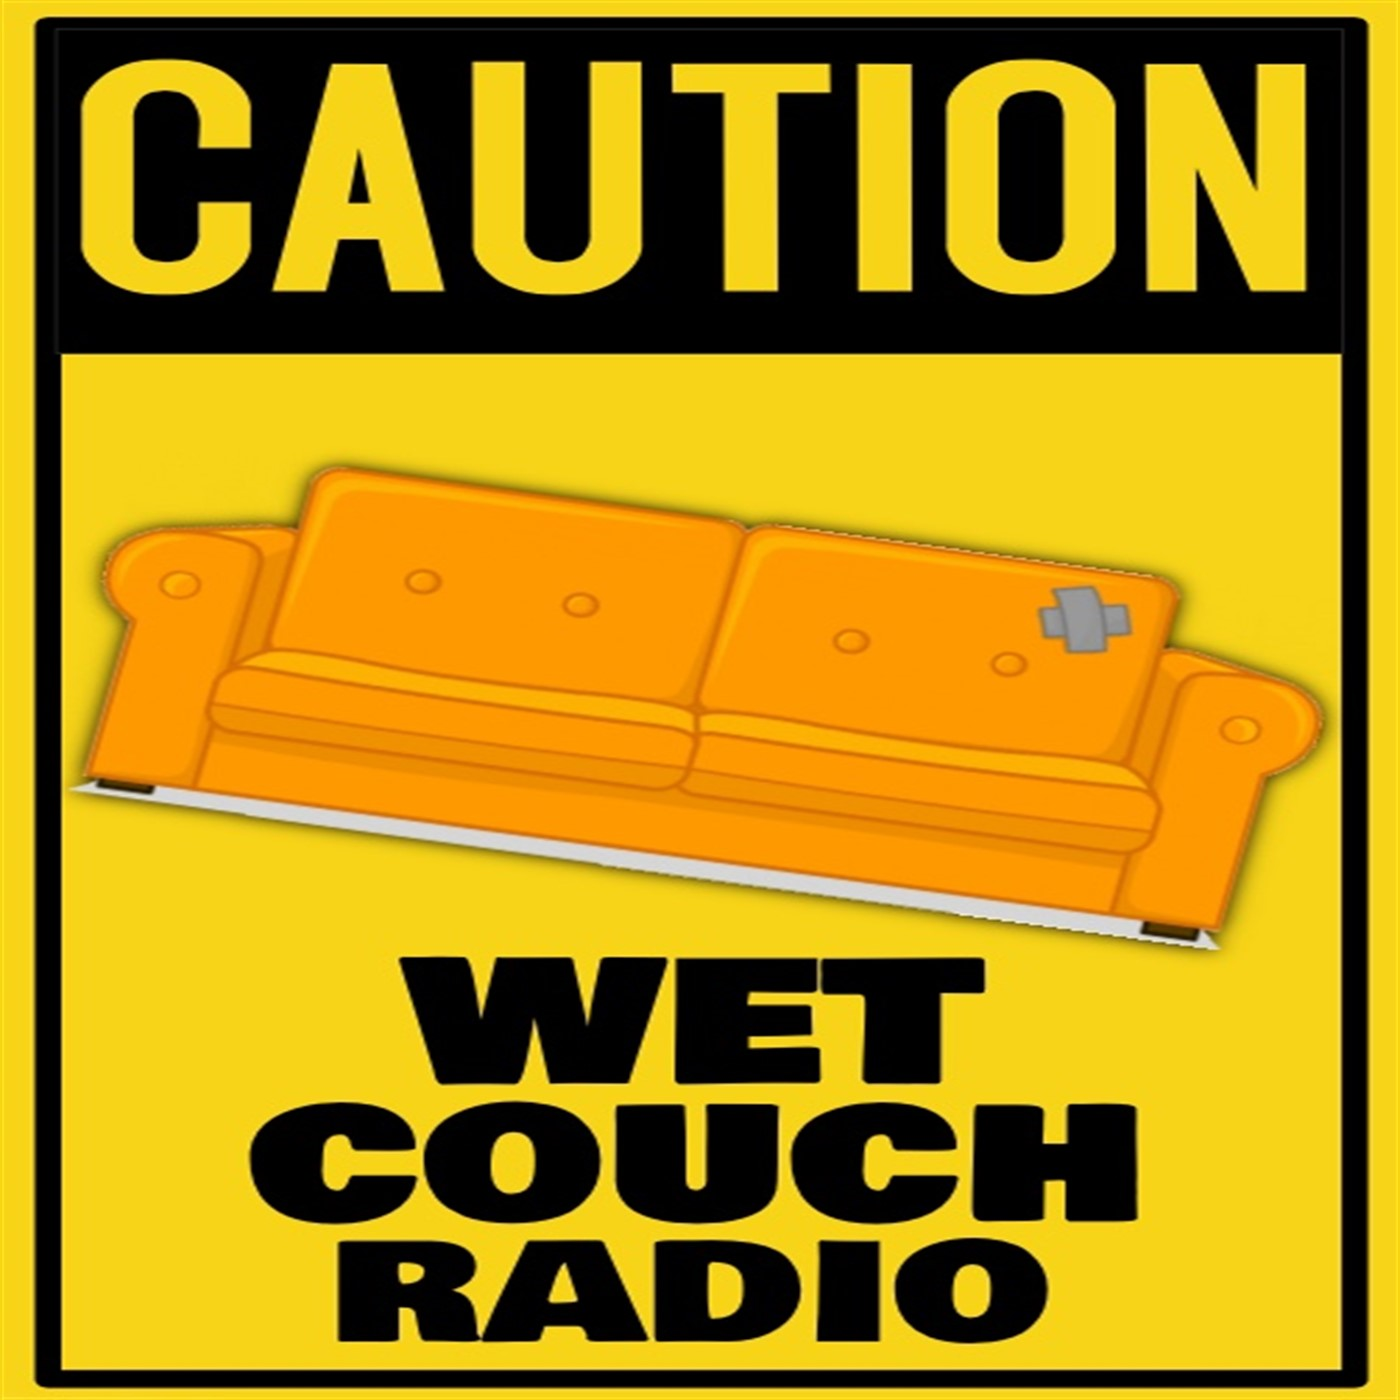 Wet Couch Radio show art